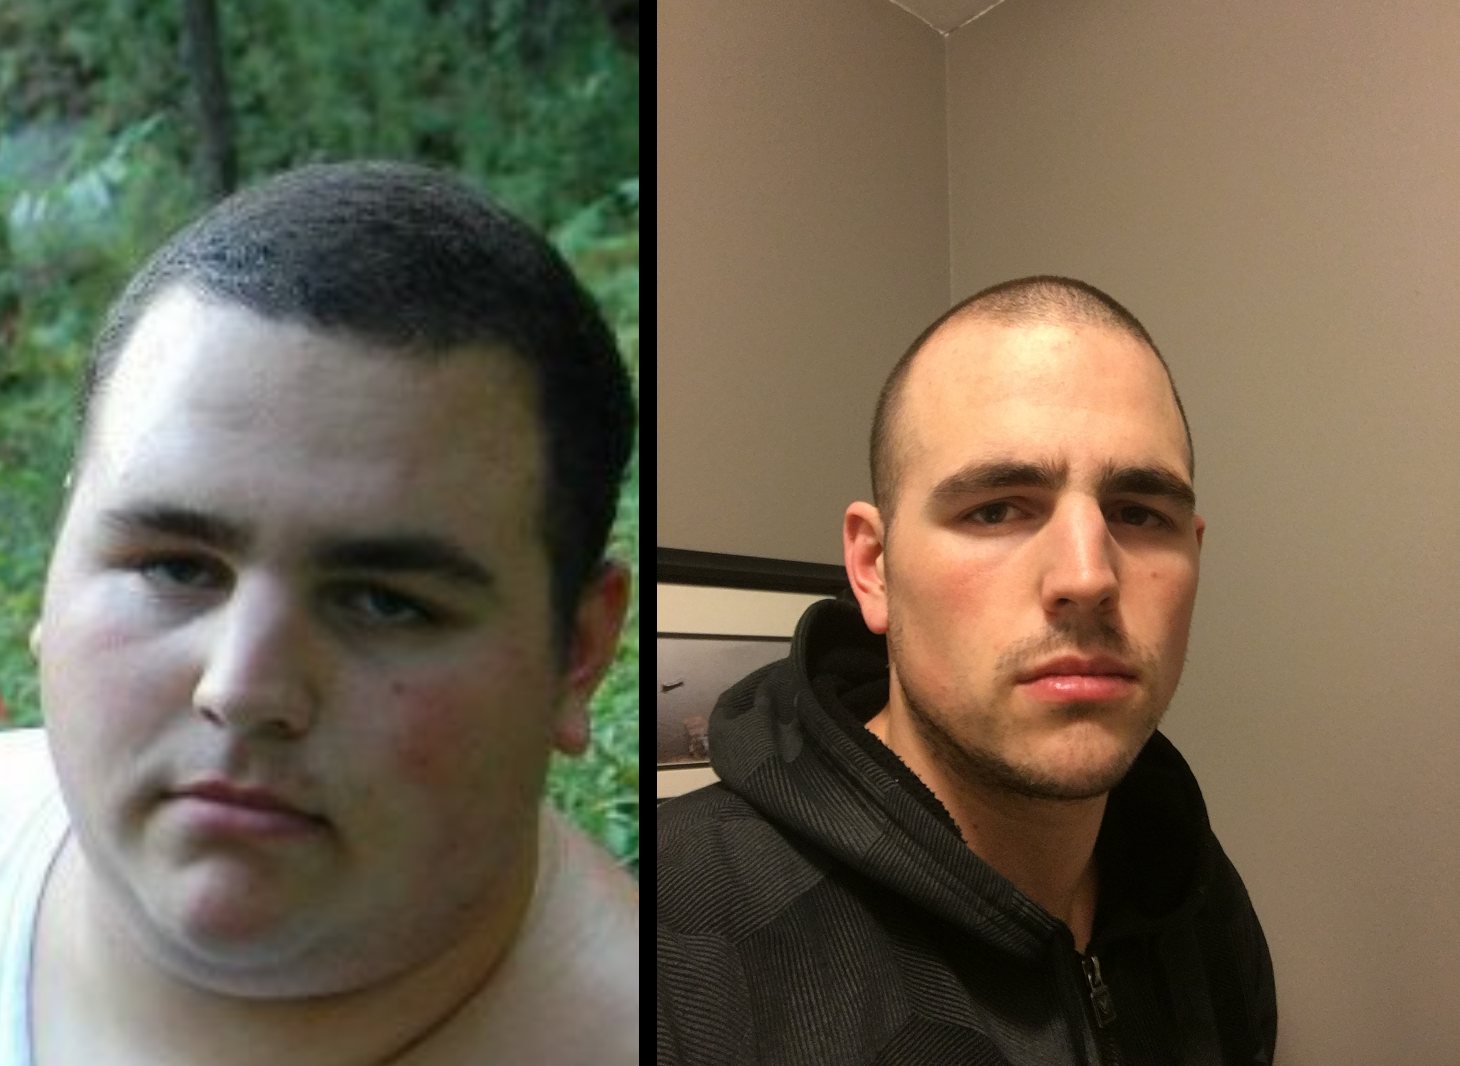 Funny Meme Faces 2018 : Put me like · weight loss transformation: 2012 550 lbs vs 2018 230 lbs